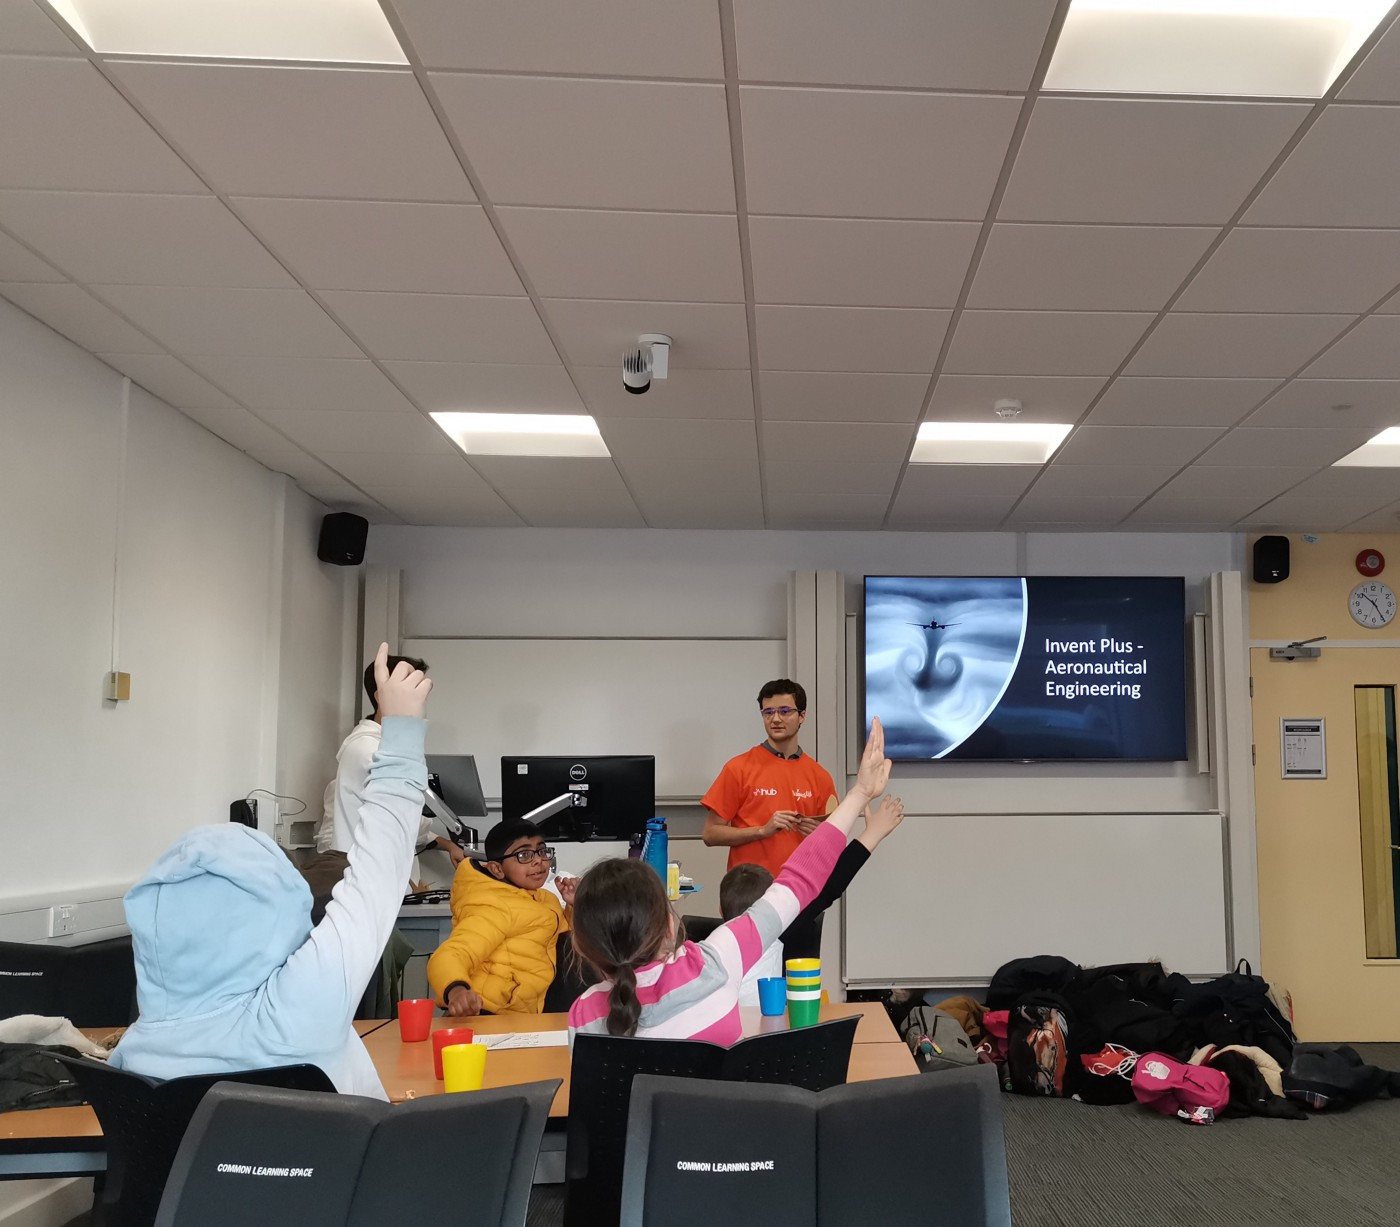 Voluneers delivering an aeronautical engineering session in a classroom